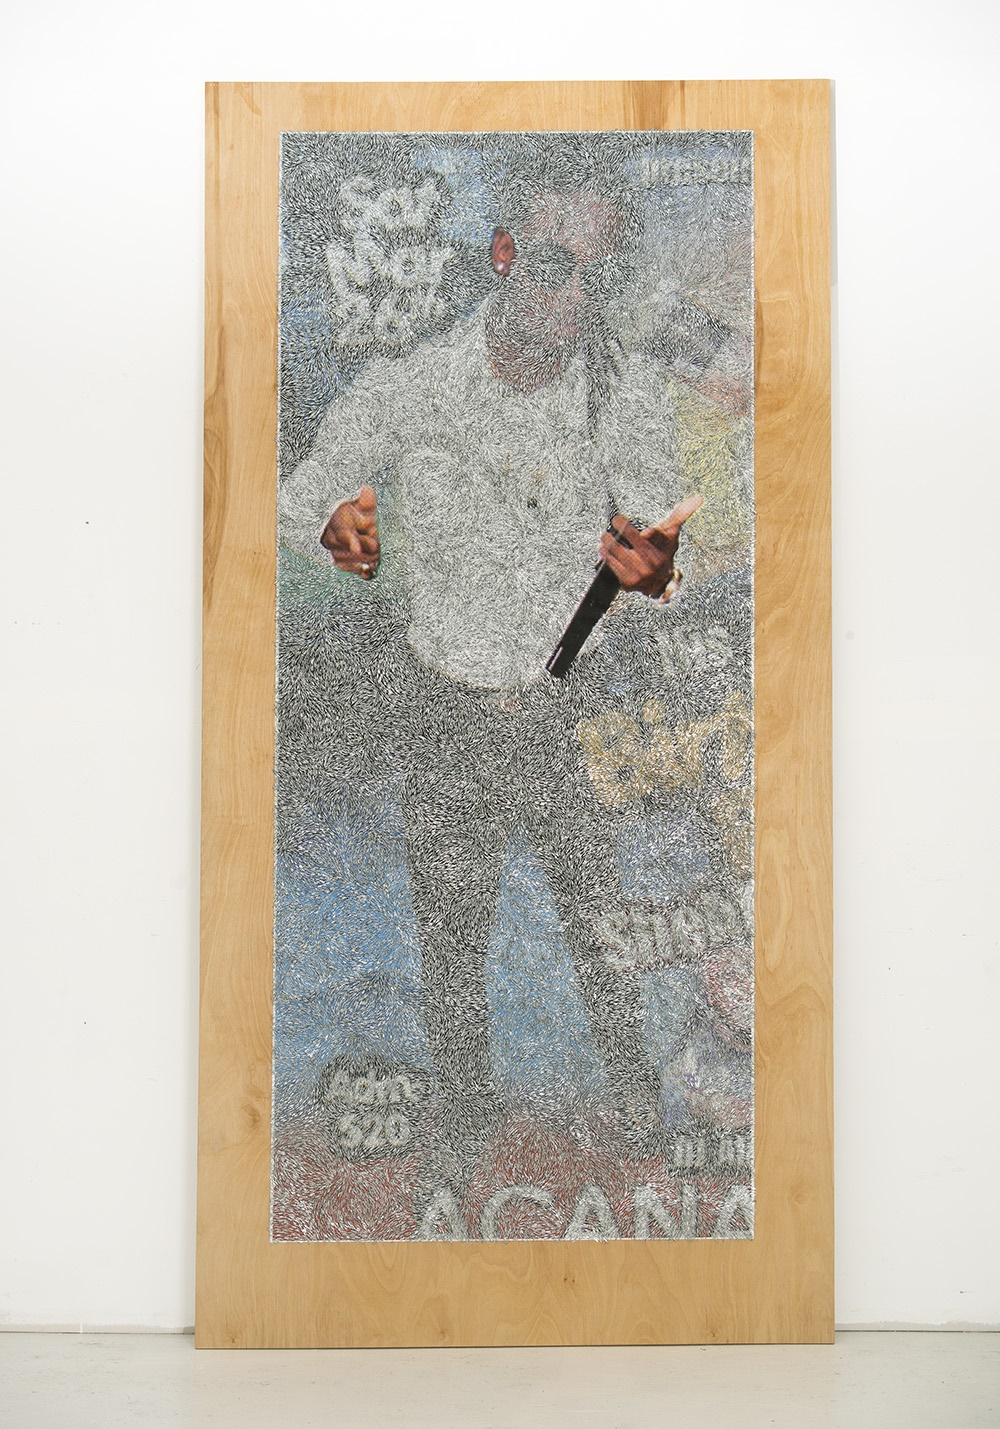 Wilmer Wilson IV,  Afr , 2017. Staples and pigment print on wood, 96 x 48 x 1 1/2 in. Courtesy of the artist and CONNERSMITH, Washington DC.